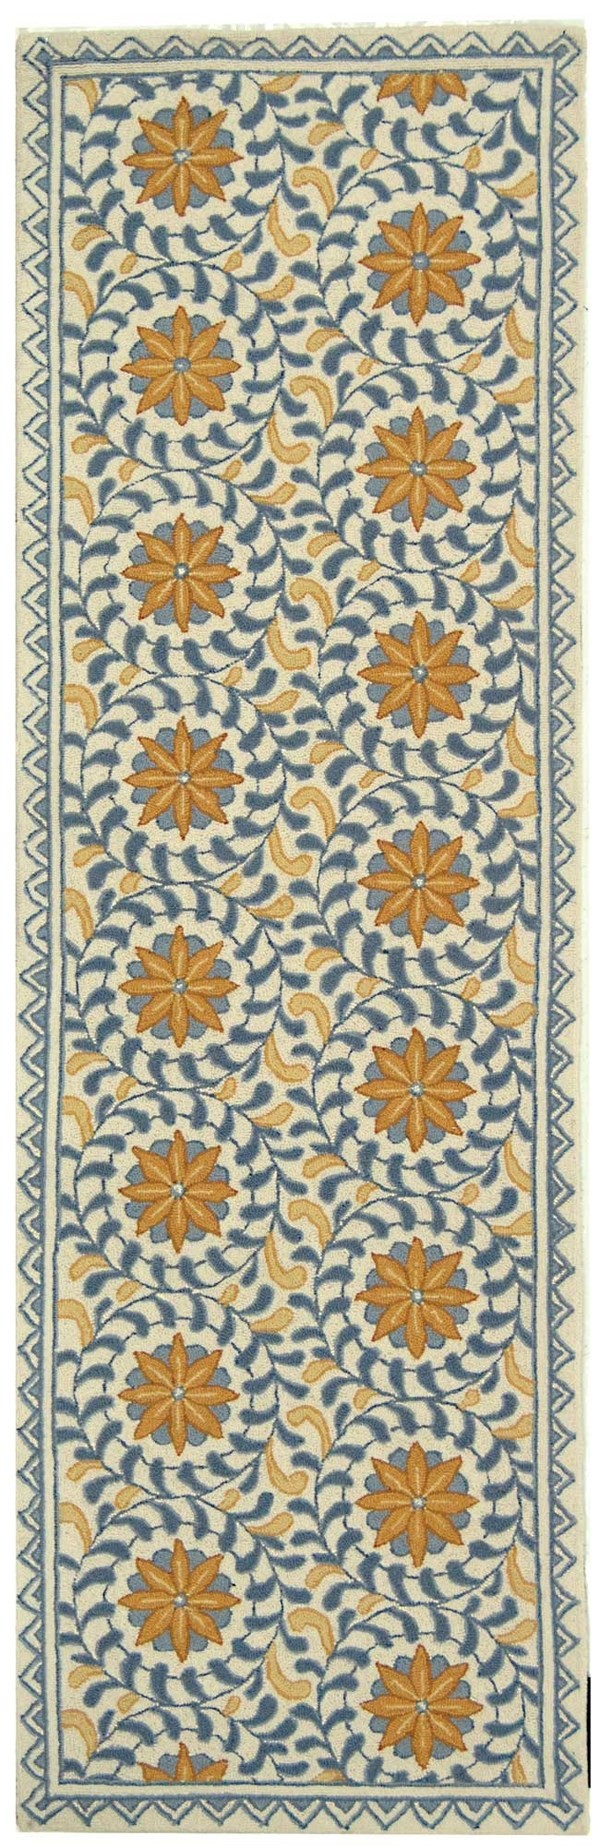 Ivory, Blue (A) Moroccan Area Rug